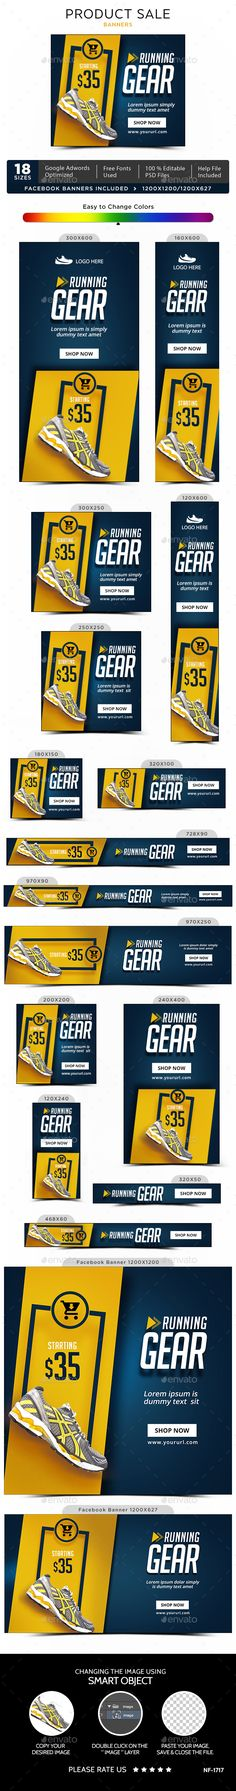 Product Sale Banners - Banners & Ads Web Elements Download here : https://graphicriver.net/item/product-sale-banners/19379946?s_rank=96&ref=Al-fatih